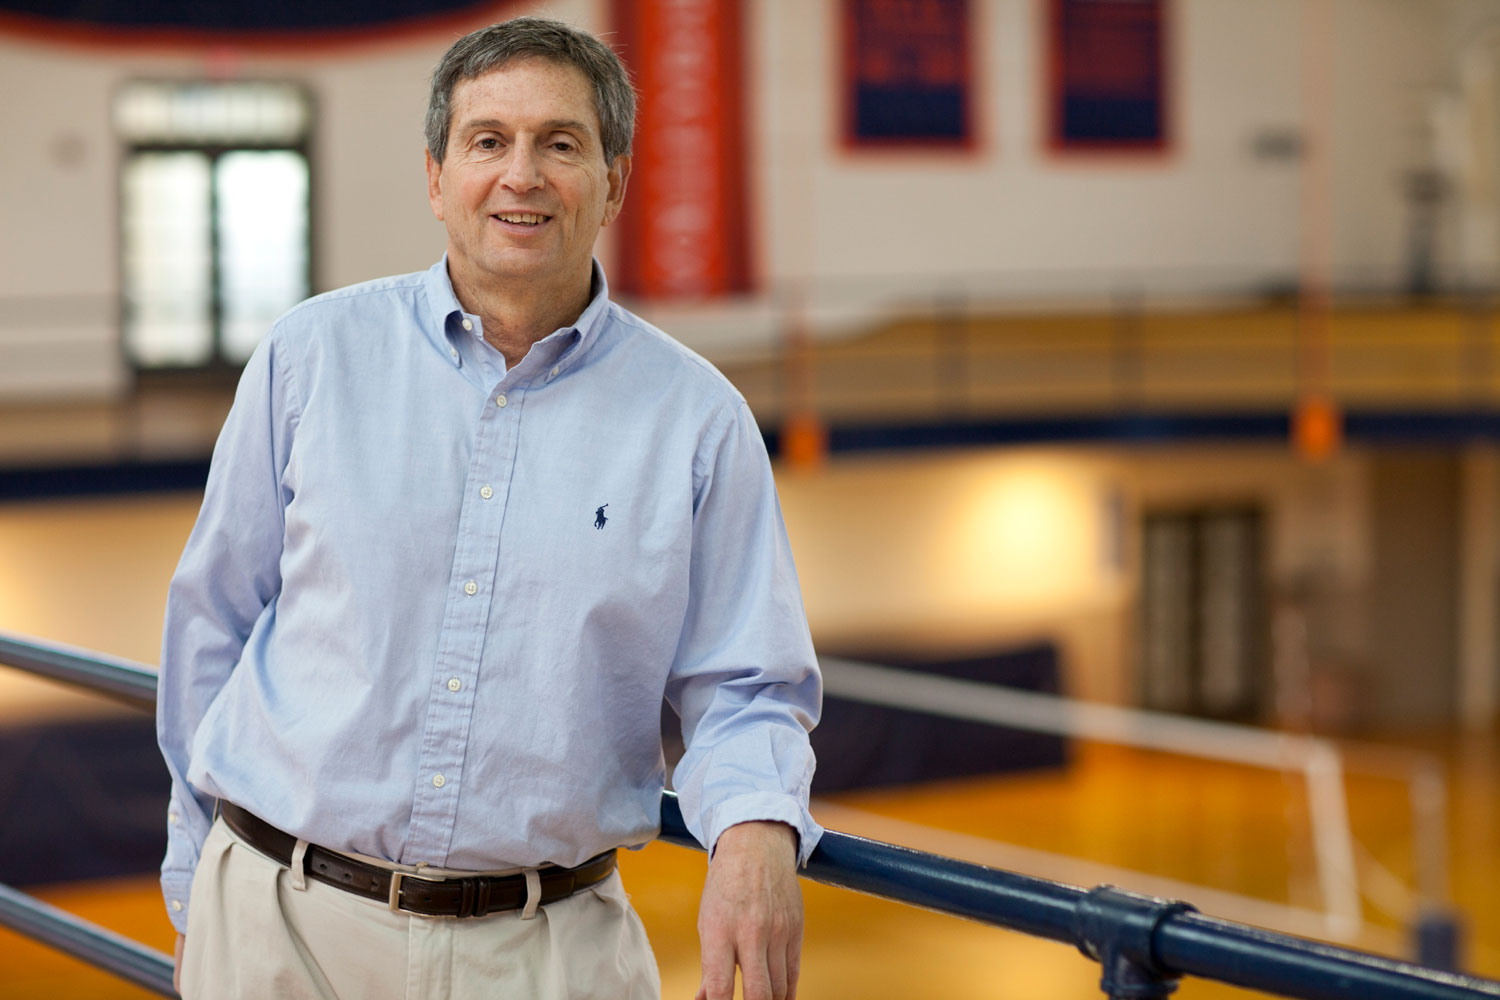 Art Weltman chairs the kinesiology department at UVA and has helped athletes of all ability levels train and prepare for races.